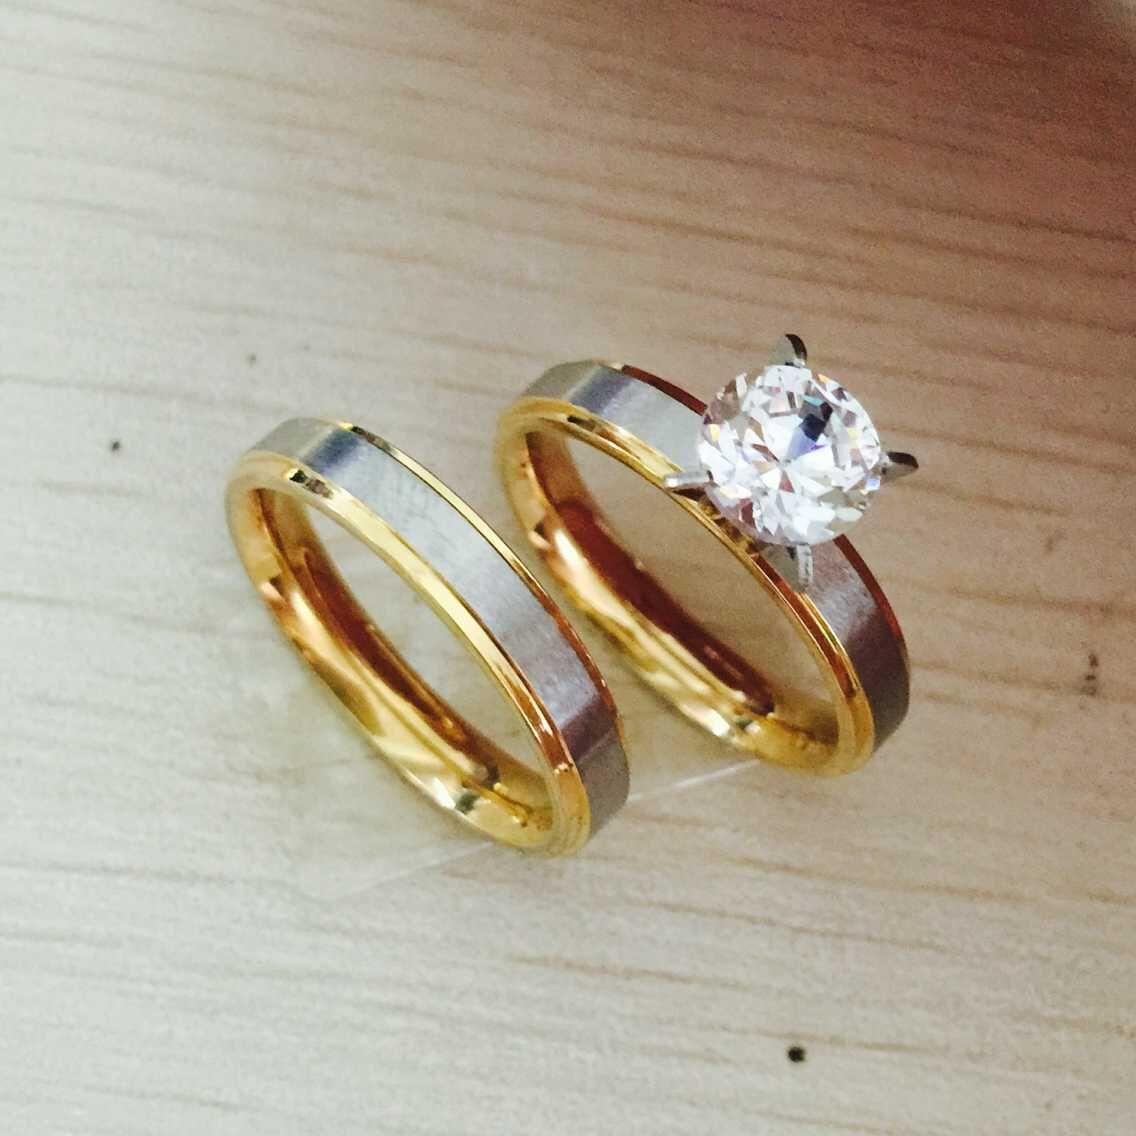 never fade 4mm titanium steel cz diamond korean couple rings set for men women engagement lovers his and hers promise2 tone gold silver pearl engagement